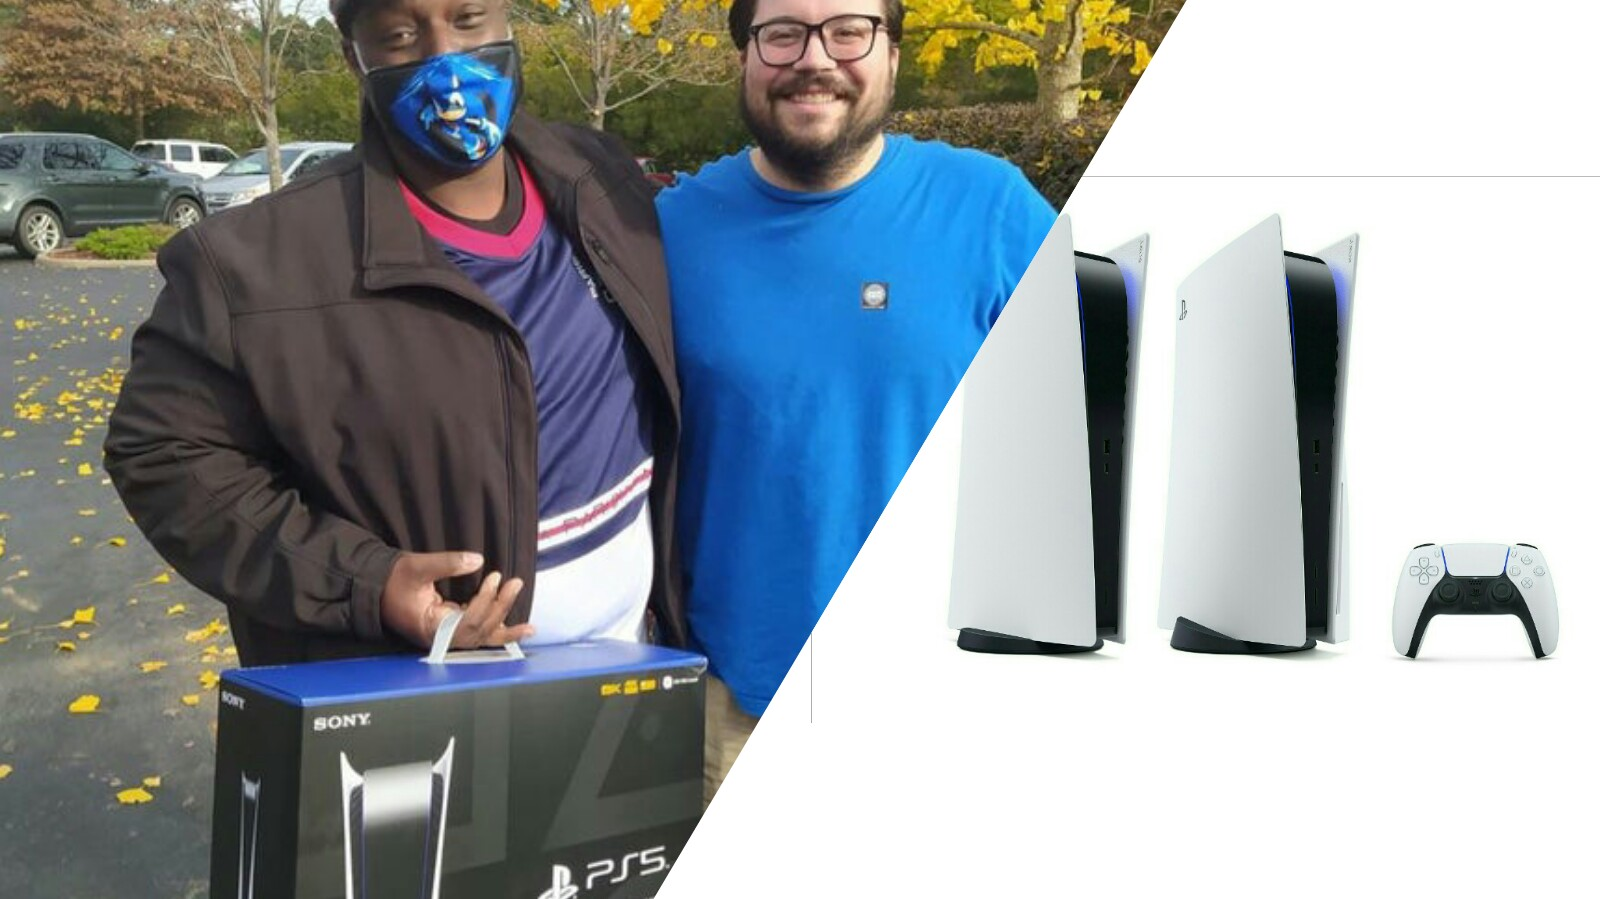 Man Buys Gaming Buddy Of 15 Years A PS5 So They Can Play Together